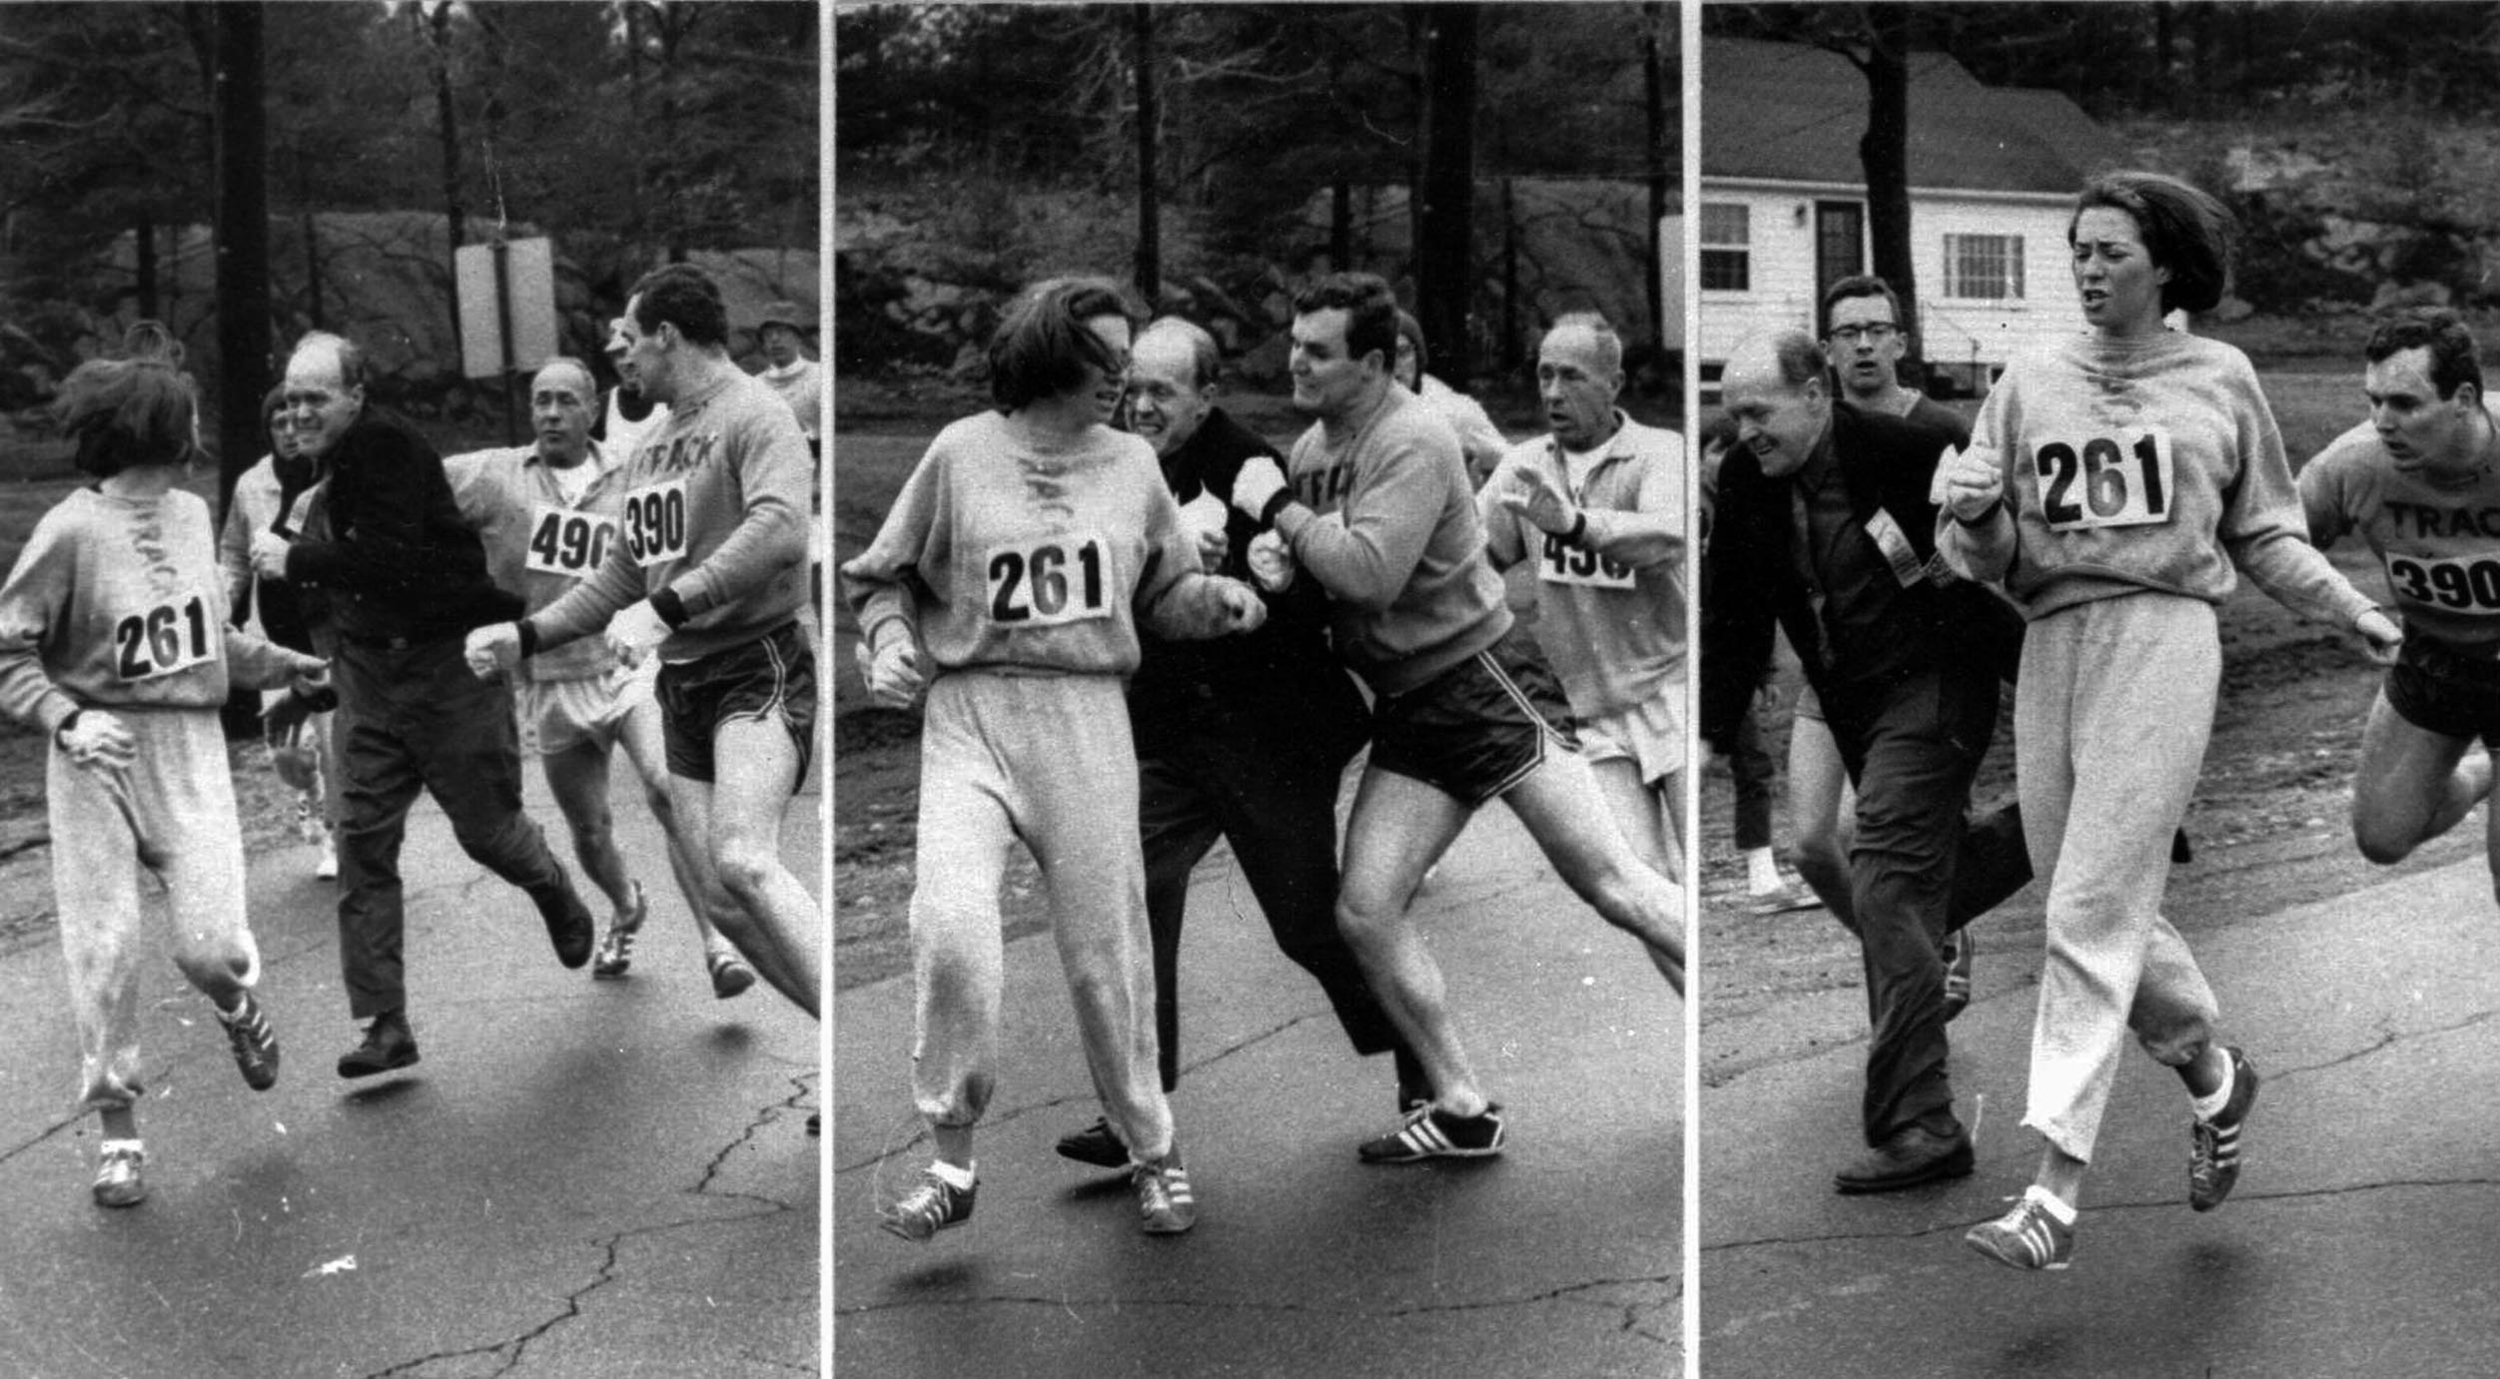 """were not officially allowed to compete and Switzer registered using her initials instead of her given name. When officials attempted to forcibly remove her from the race, Switzer's boyfriend shoved the men aside. Five years later, the Boston Athletic Association reversed their ban on female entrants. Switzer later won the women's 1974 New York City Marathon and was named Female Runner of the Decade, in part for her contributions to improving opportunities for female distance runners. Her reception at races is much different now: """" When I go to the Boston Marathon, I have wet shoulders - women fall into my arms crying. They're weeping for joy because running has changed their lives. They feel they can do anything """"."""